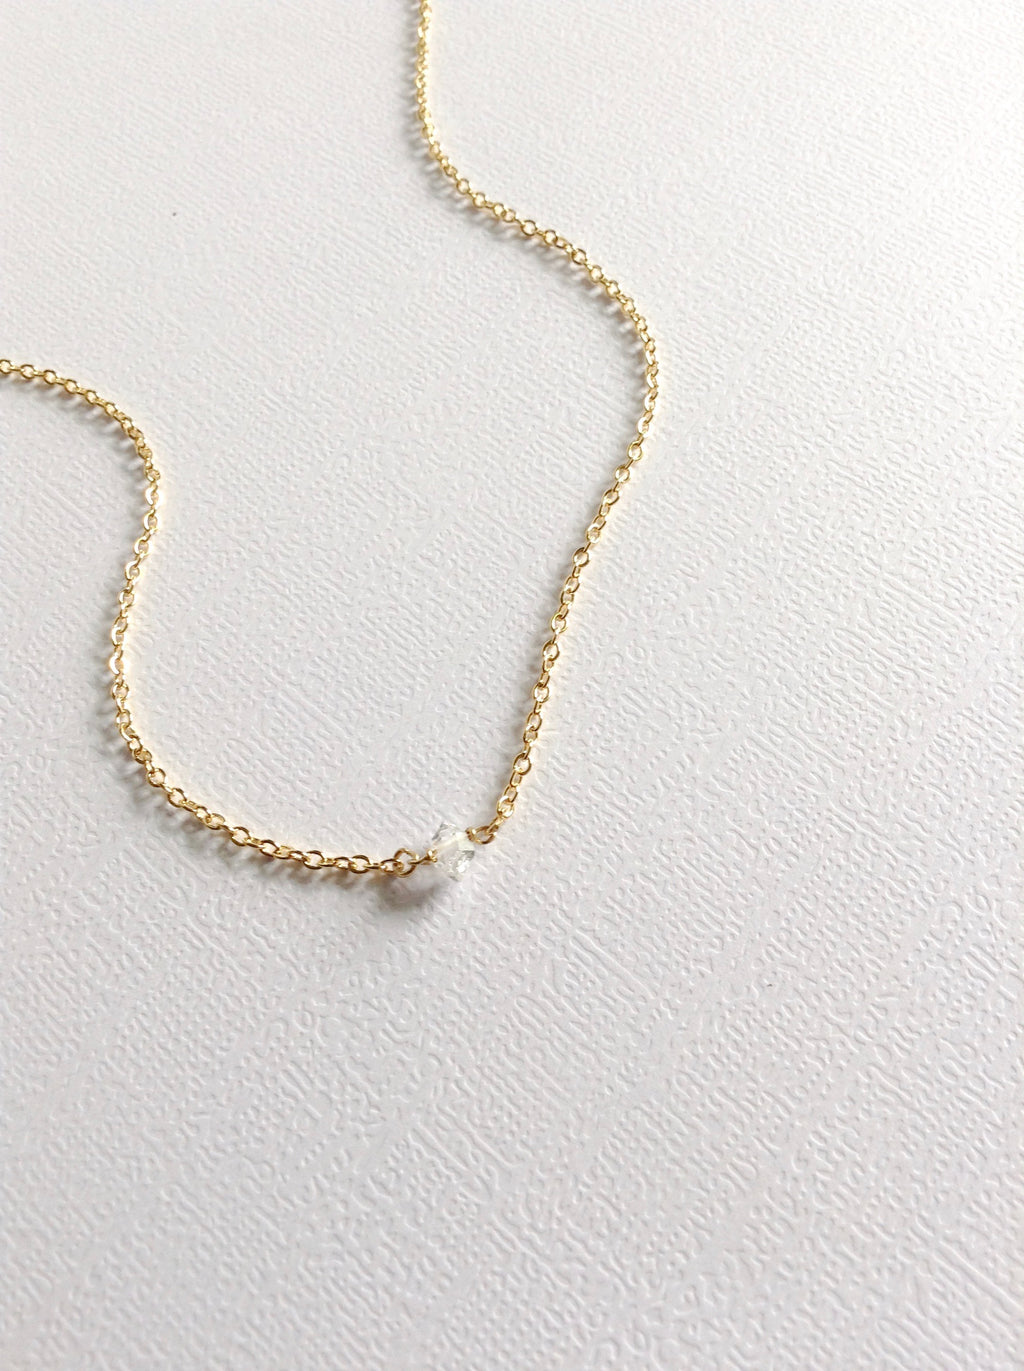 Herkimer Diamond Necklace | IB Jewelry